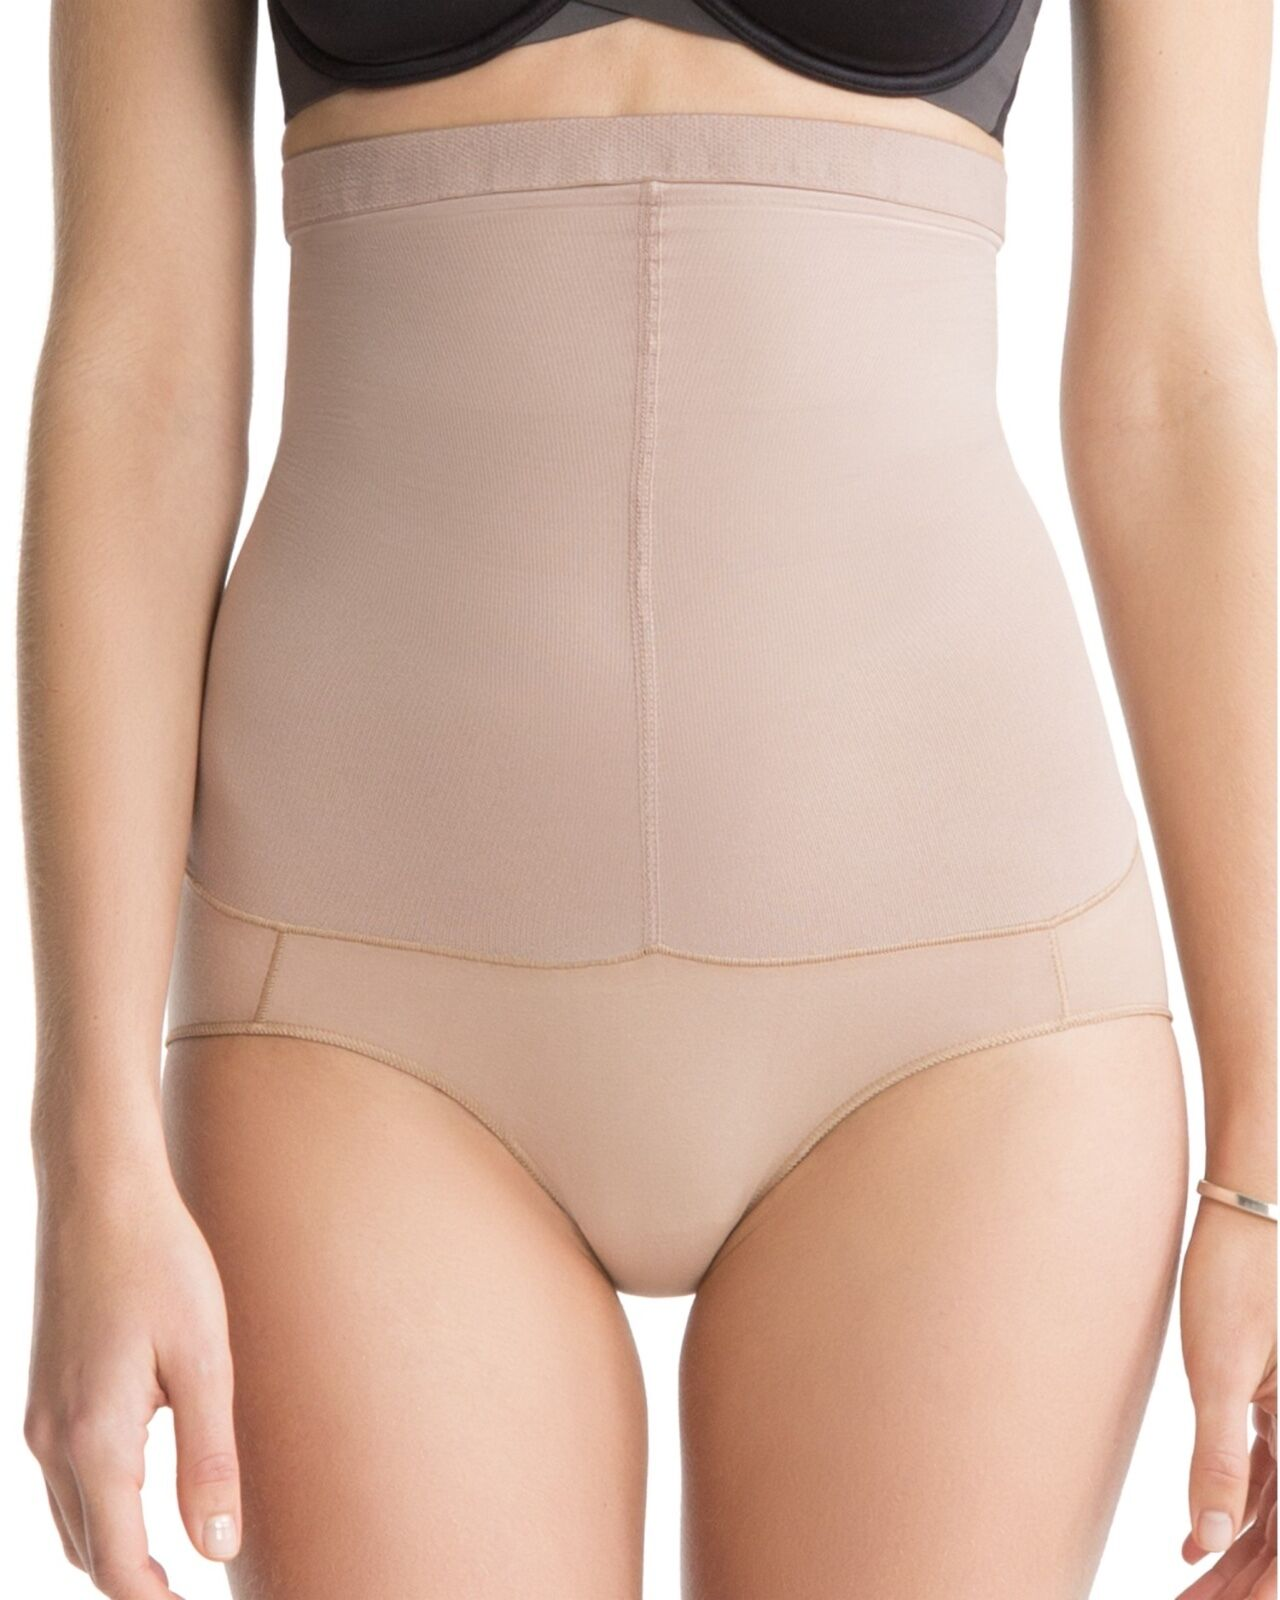 a970704274cd7 ... UPC 843953022121 product image for Spanx Higher Power High Waist  Shaping Knickers Small Size B Bare